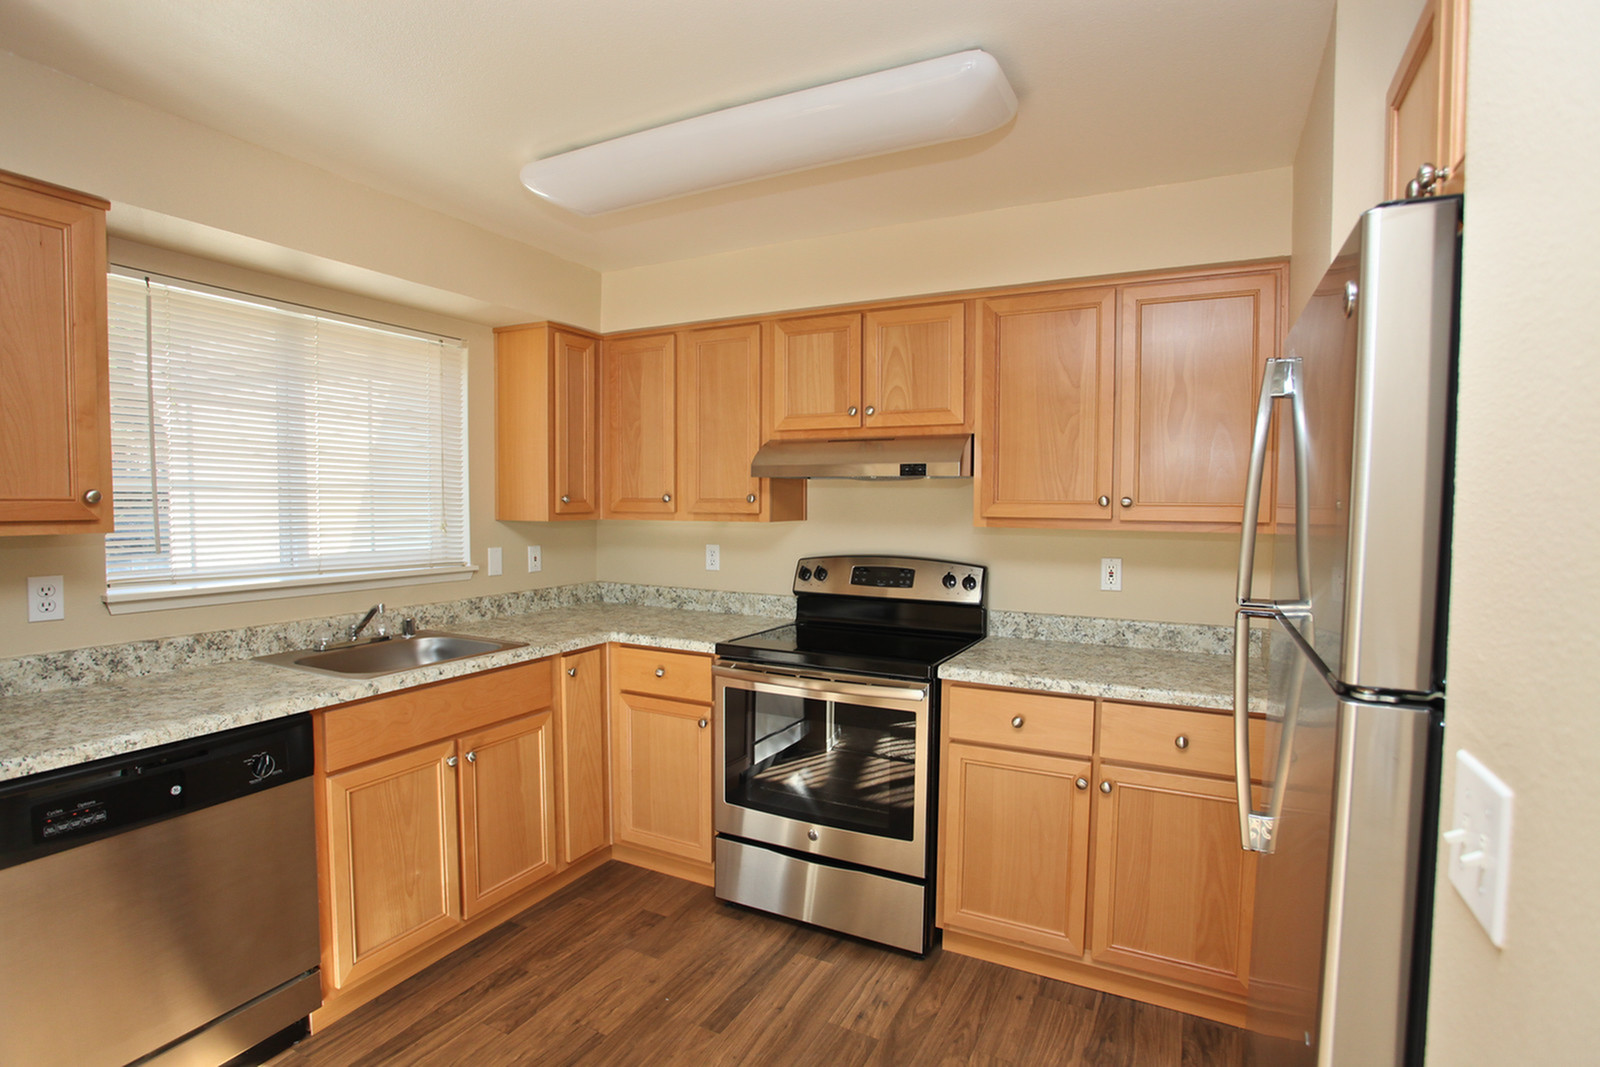 Renovated kitchen stainless steel | Puyallup WA Apartments For Rent | Canyon Park